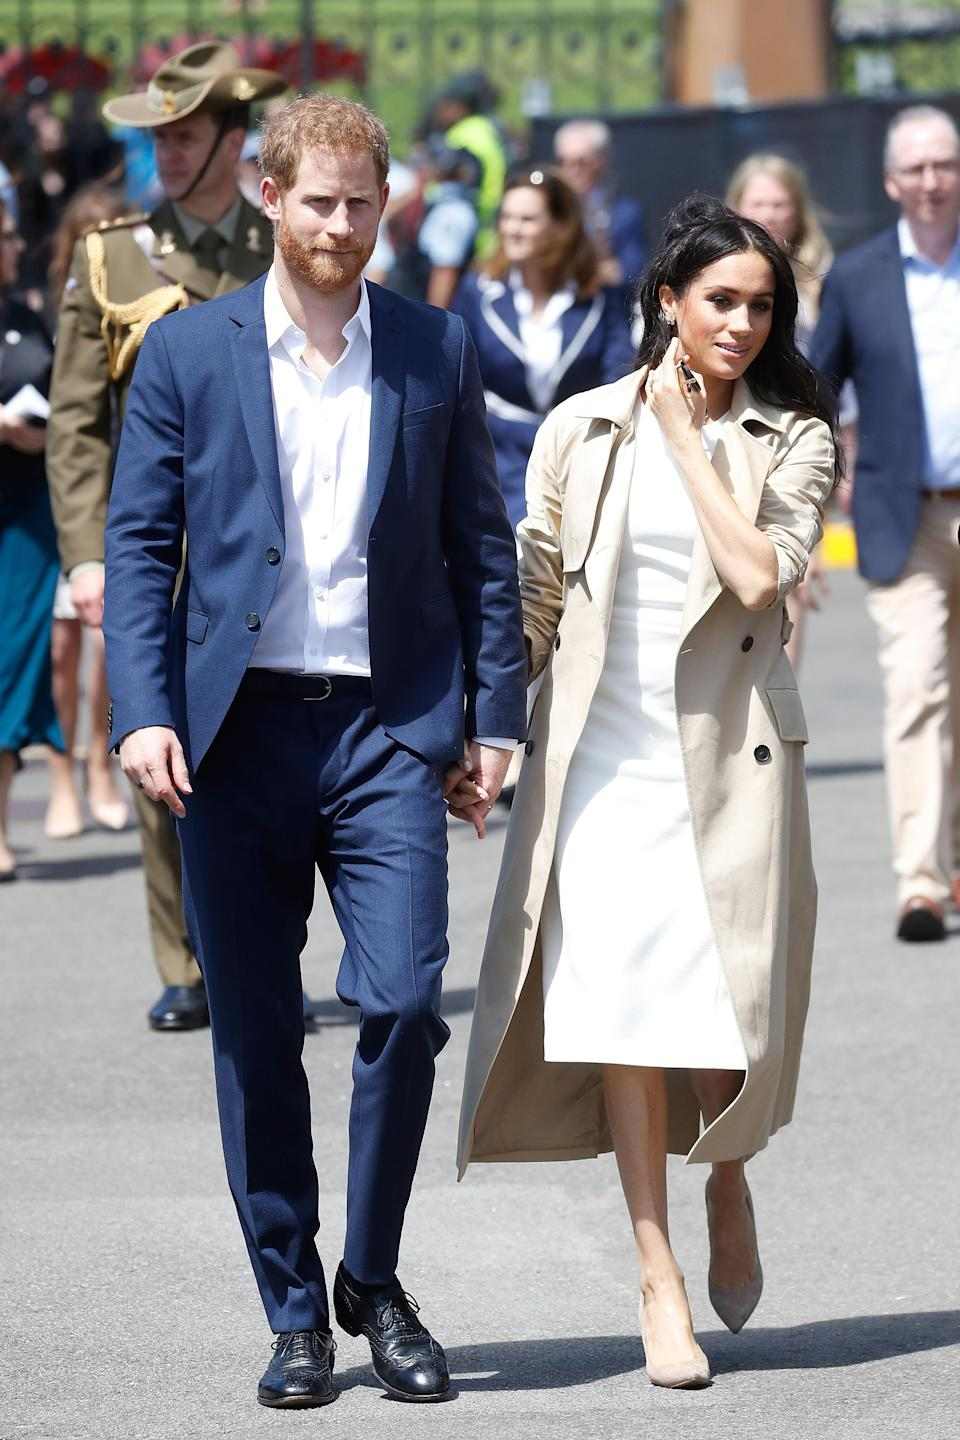 <p>Later in the day, Meghan and Harry stopped at the Sydney Opera House where they were treated to a performance by Aboriginal and Torres Strait Islander dance company Bangarra Dance Theatre, before doing a meet and greet with well-wishers. Meghan added a beige coat to her dress in the face of some pretty chilly winds. Photo: Getty </p>